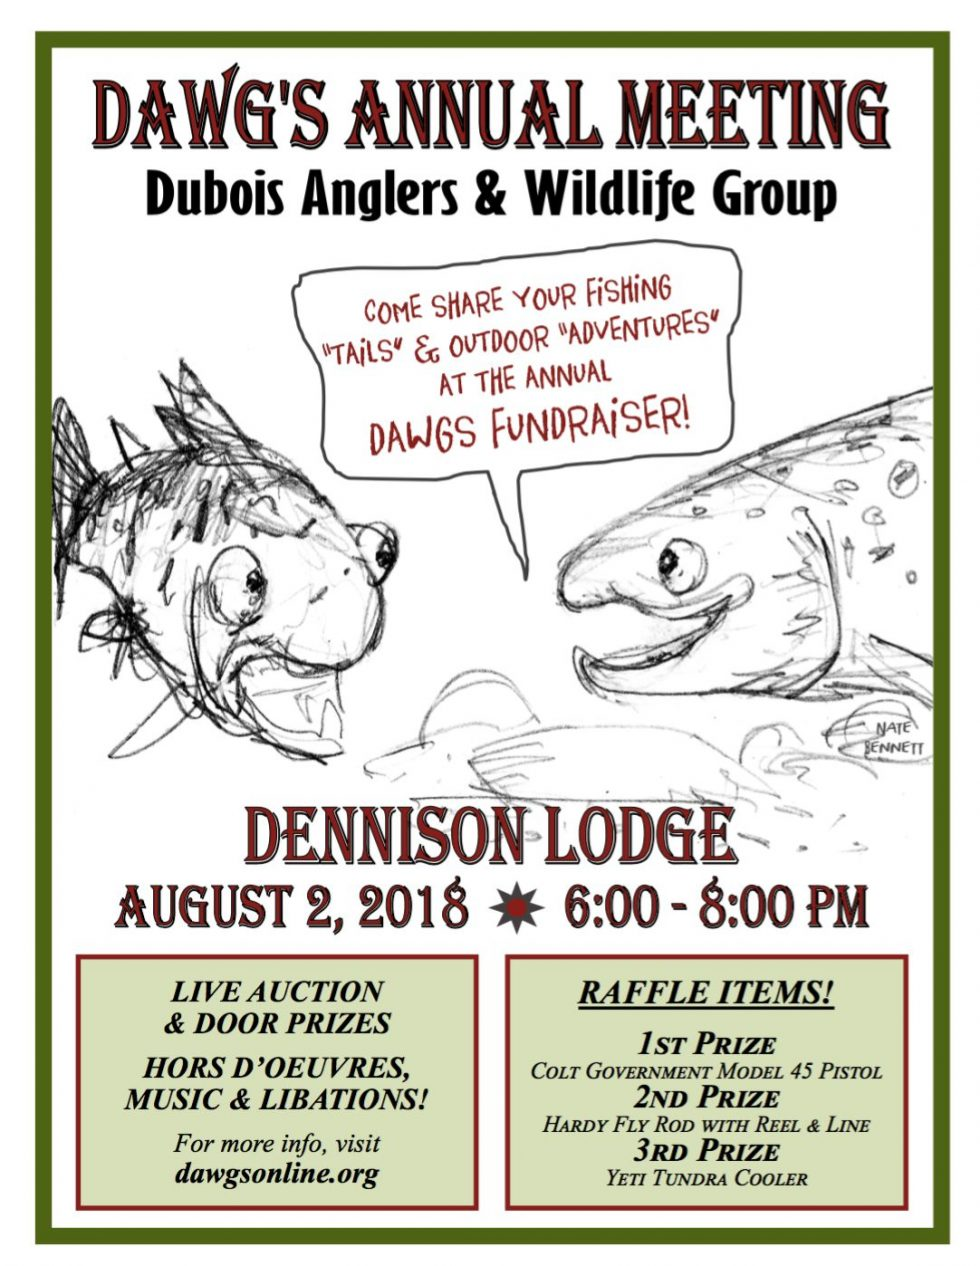 Come visit us at the Dennison Lodge in Dubois at 6pm Aug 2nd 2018